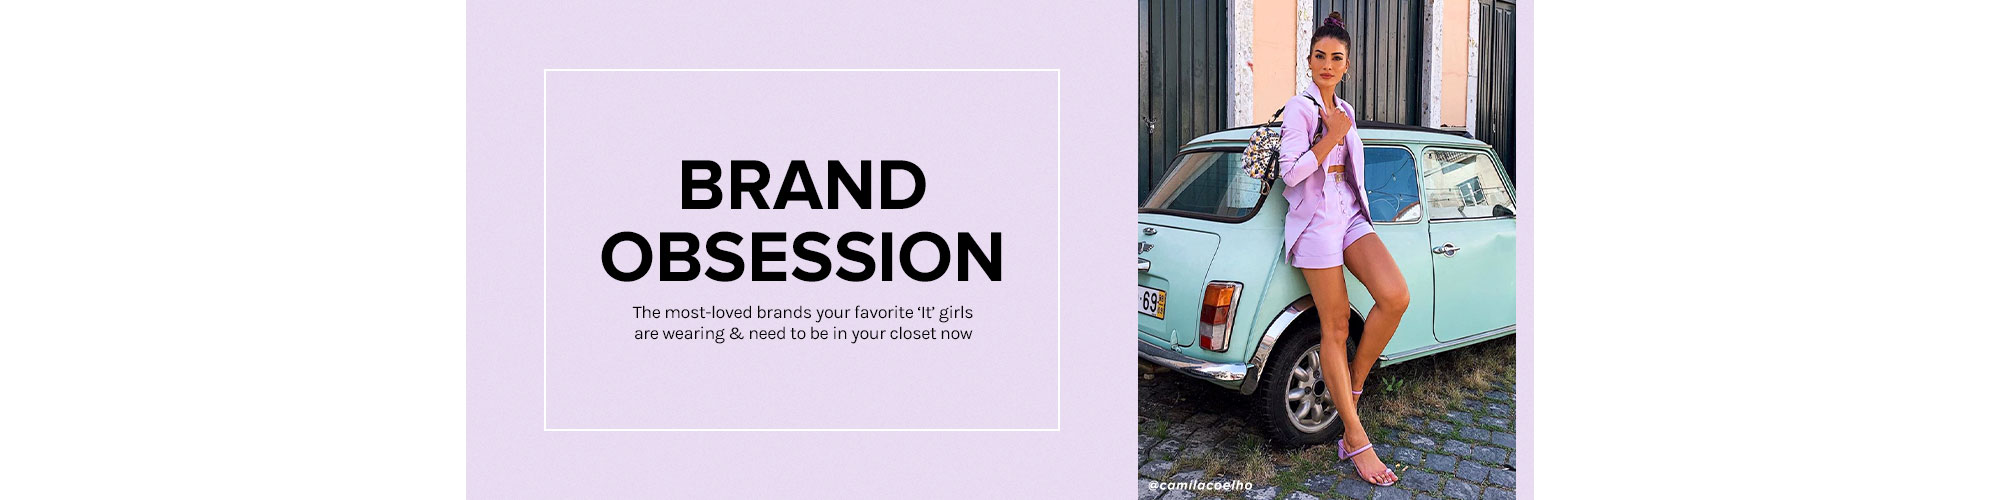 Brand Obsession. The most-loved brands your favorite \u2018It\u2019 girls are wearing & need to be in your closet now